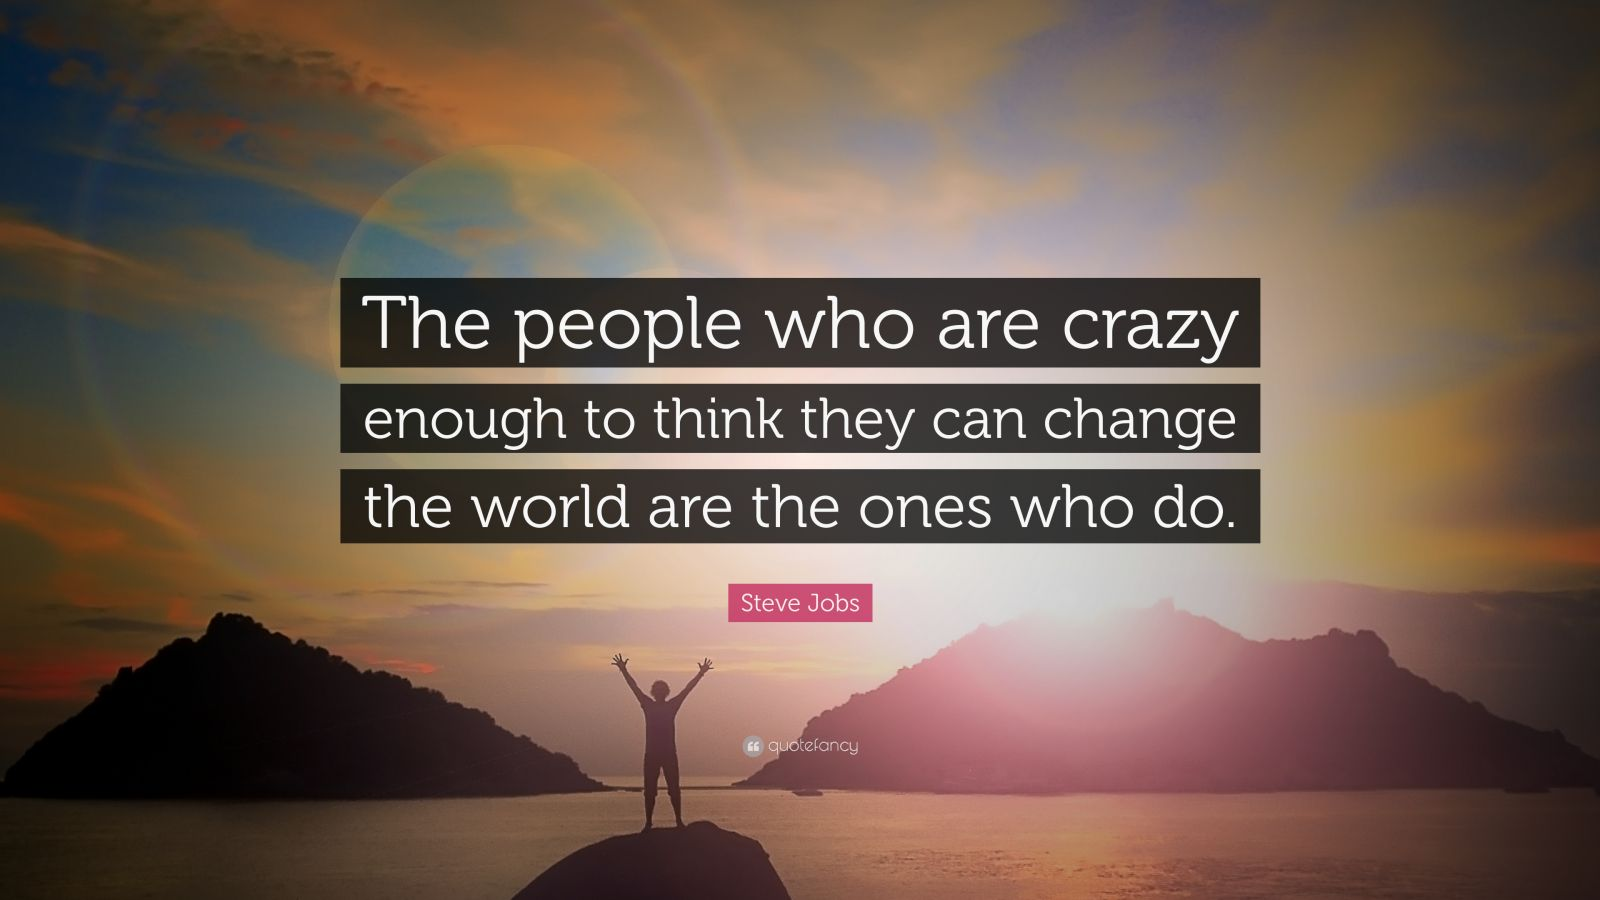 Elon Musk Quotes Wallpaper Steve Jobs Quote The People Who Are Crazy Enough To